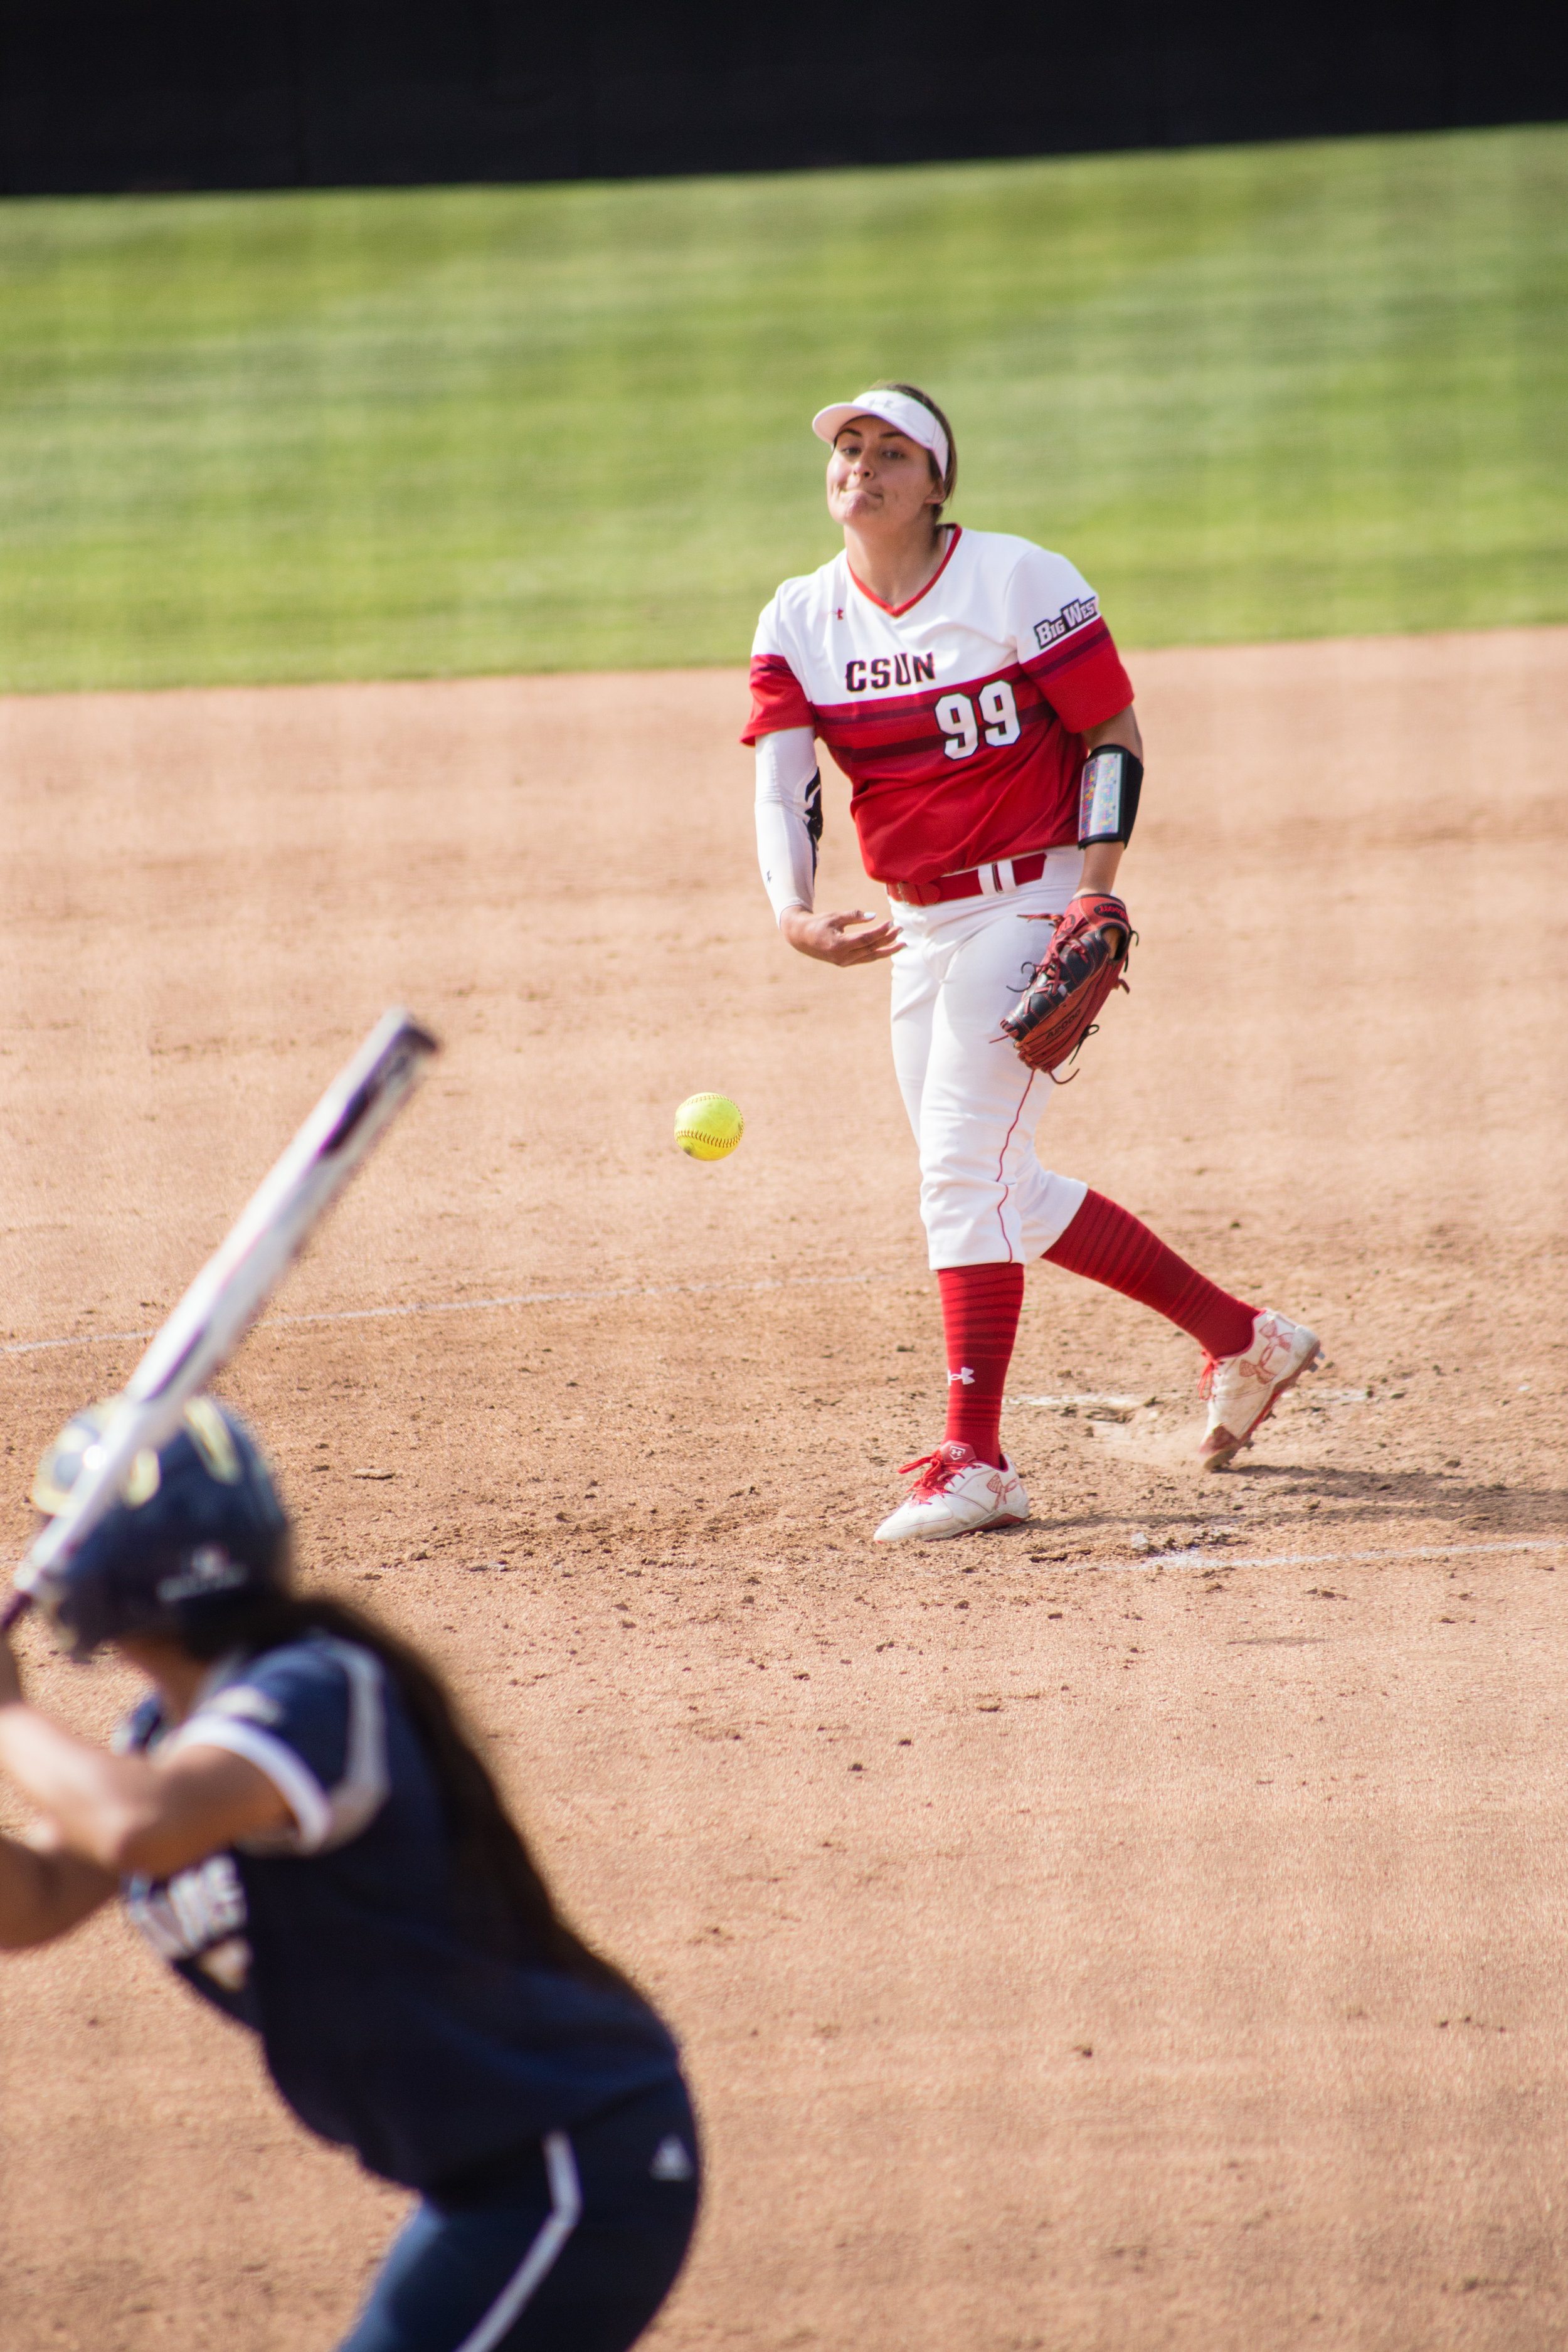 2018_03_30 - Softball vs UC Davis (max reso)-2.jpg